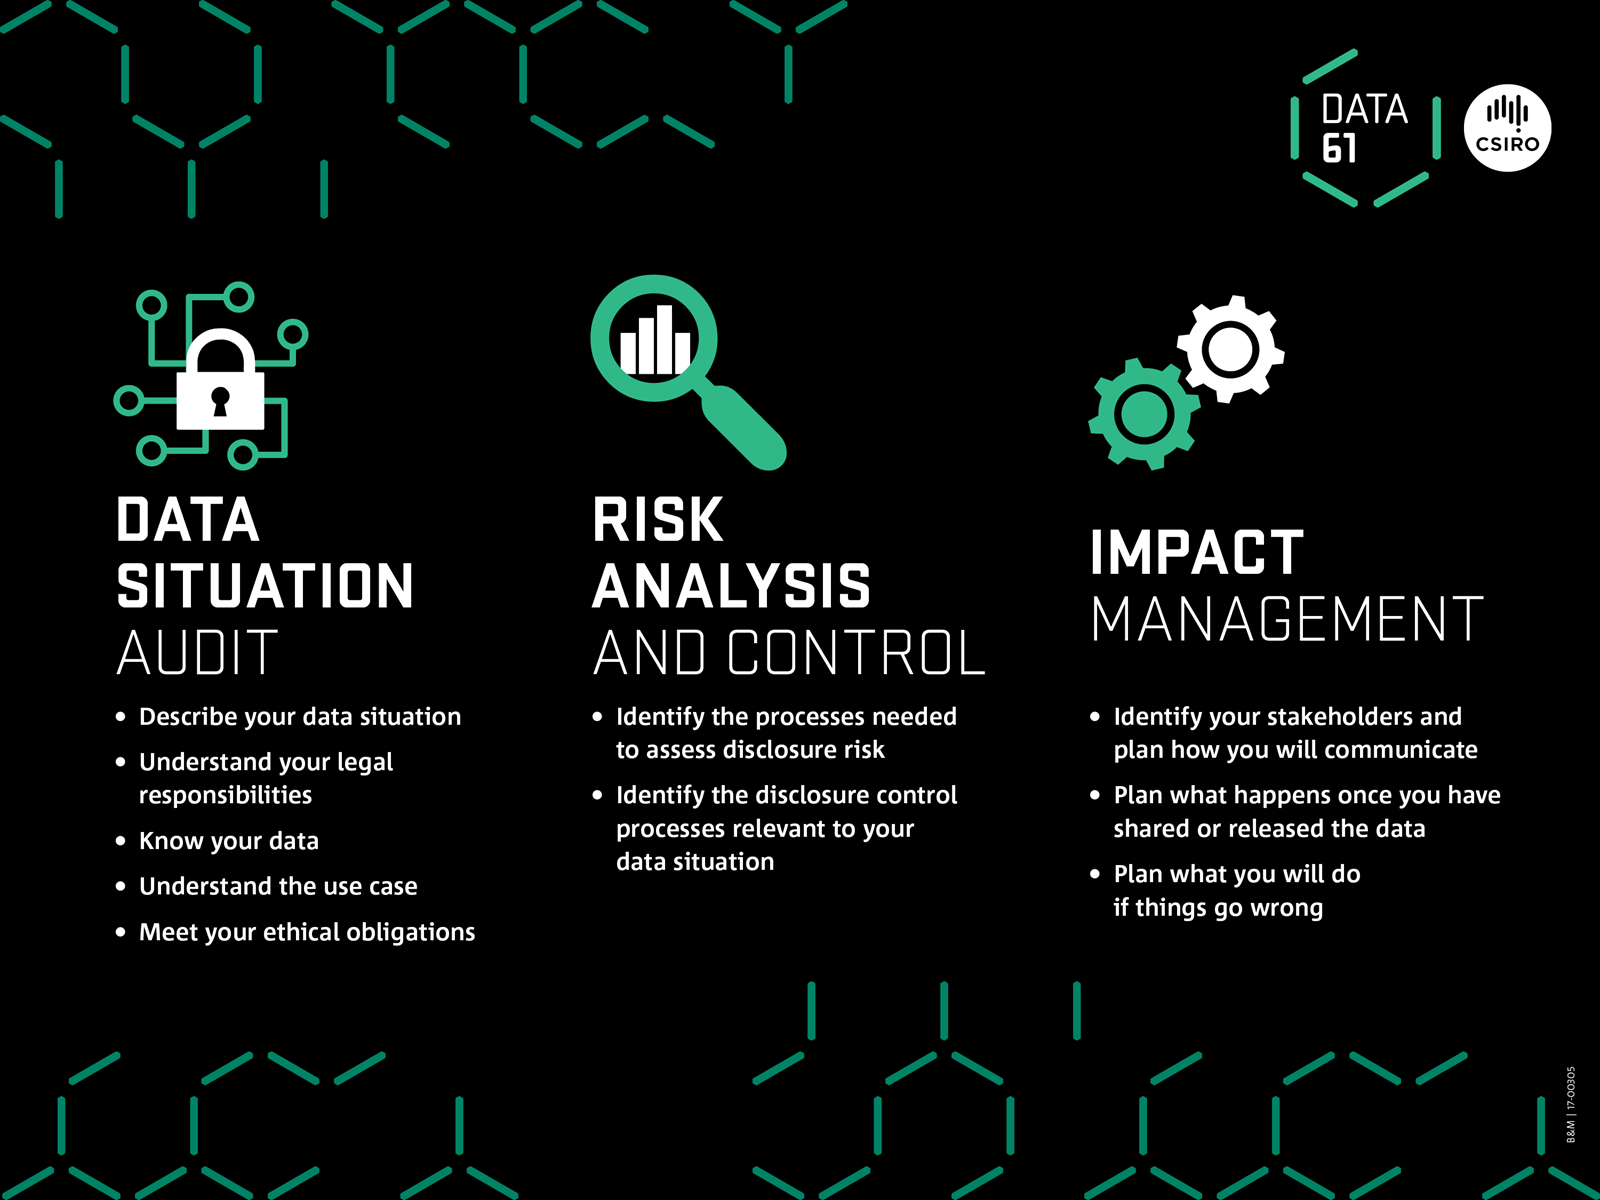 Infographic which provides out three steps to de-identification: Data Situation Audit, Risk Analysis and Control, and Impact Management